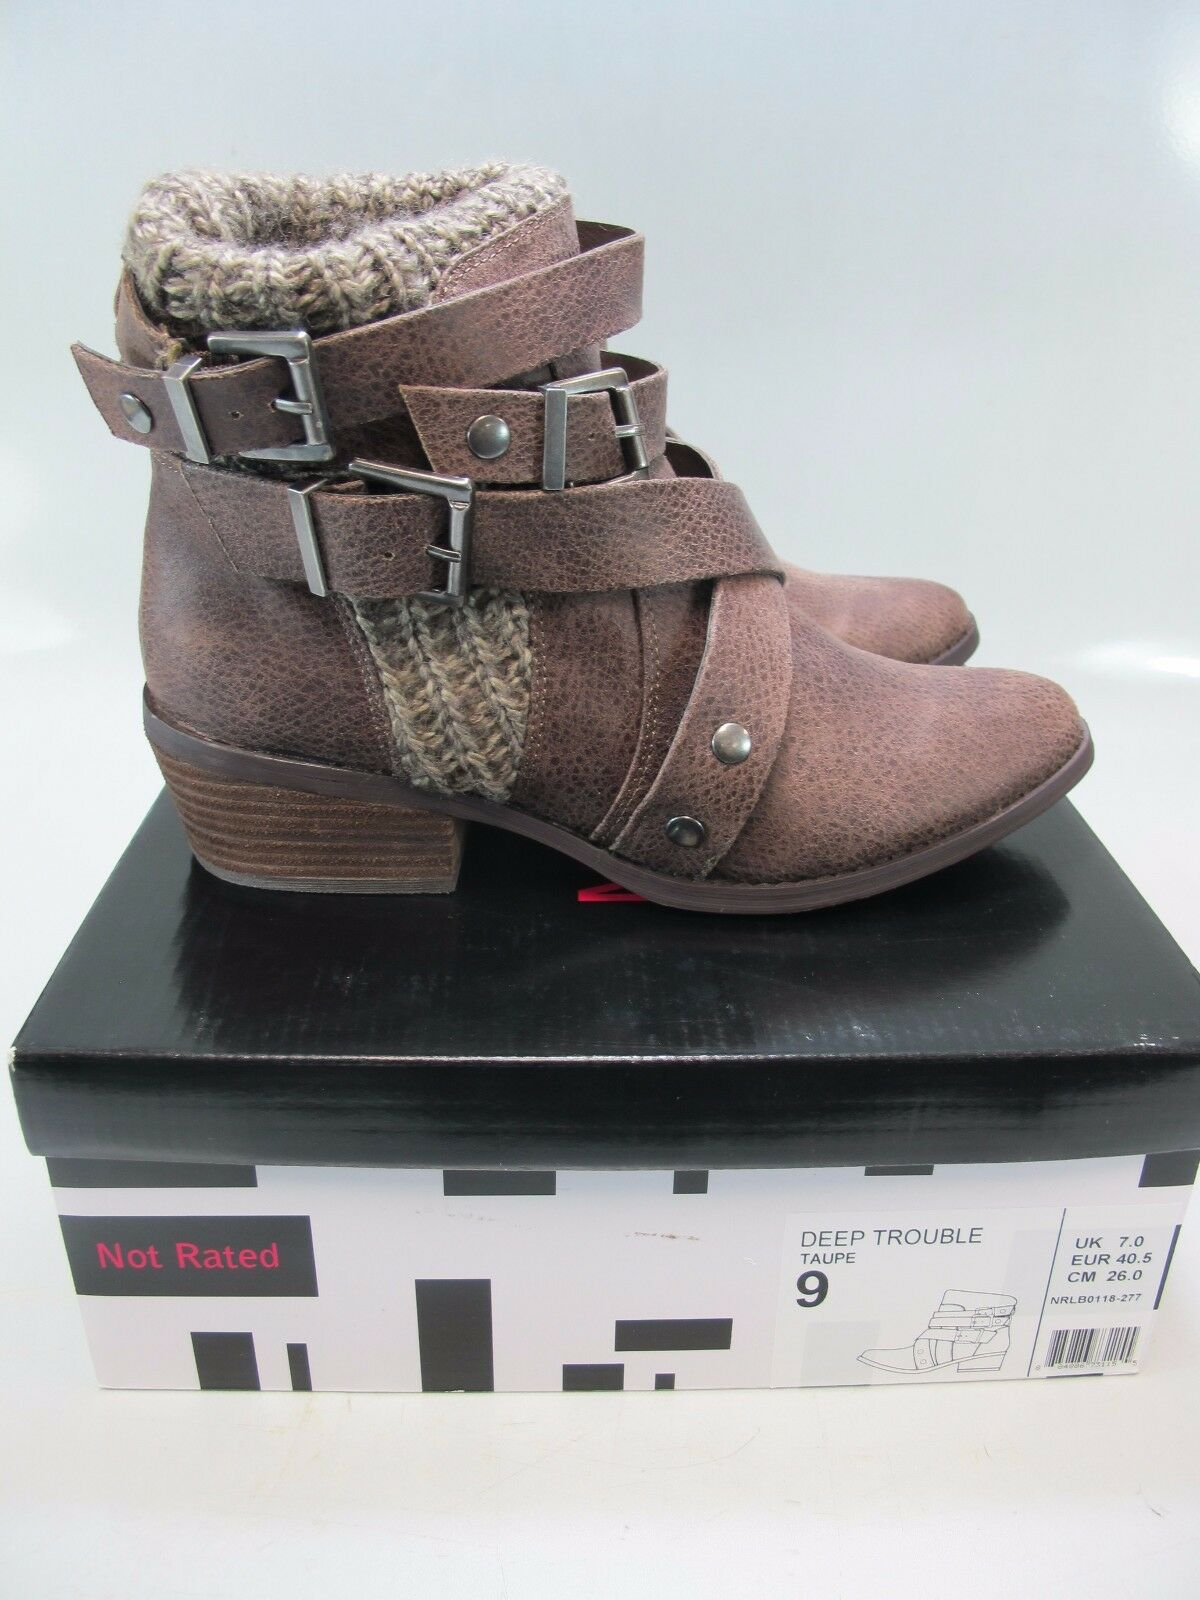 NOT RATED Womens DEEP TROUBLE Taupe Boots US 9M; EU 40.5 (NRLB0118-277)